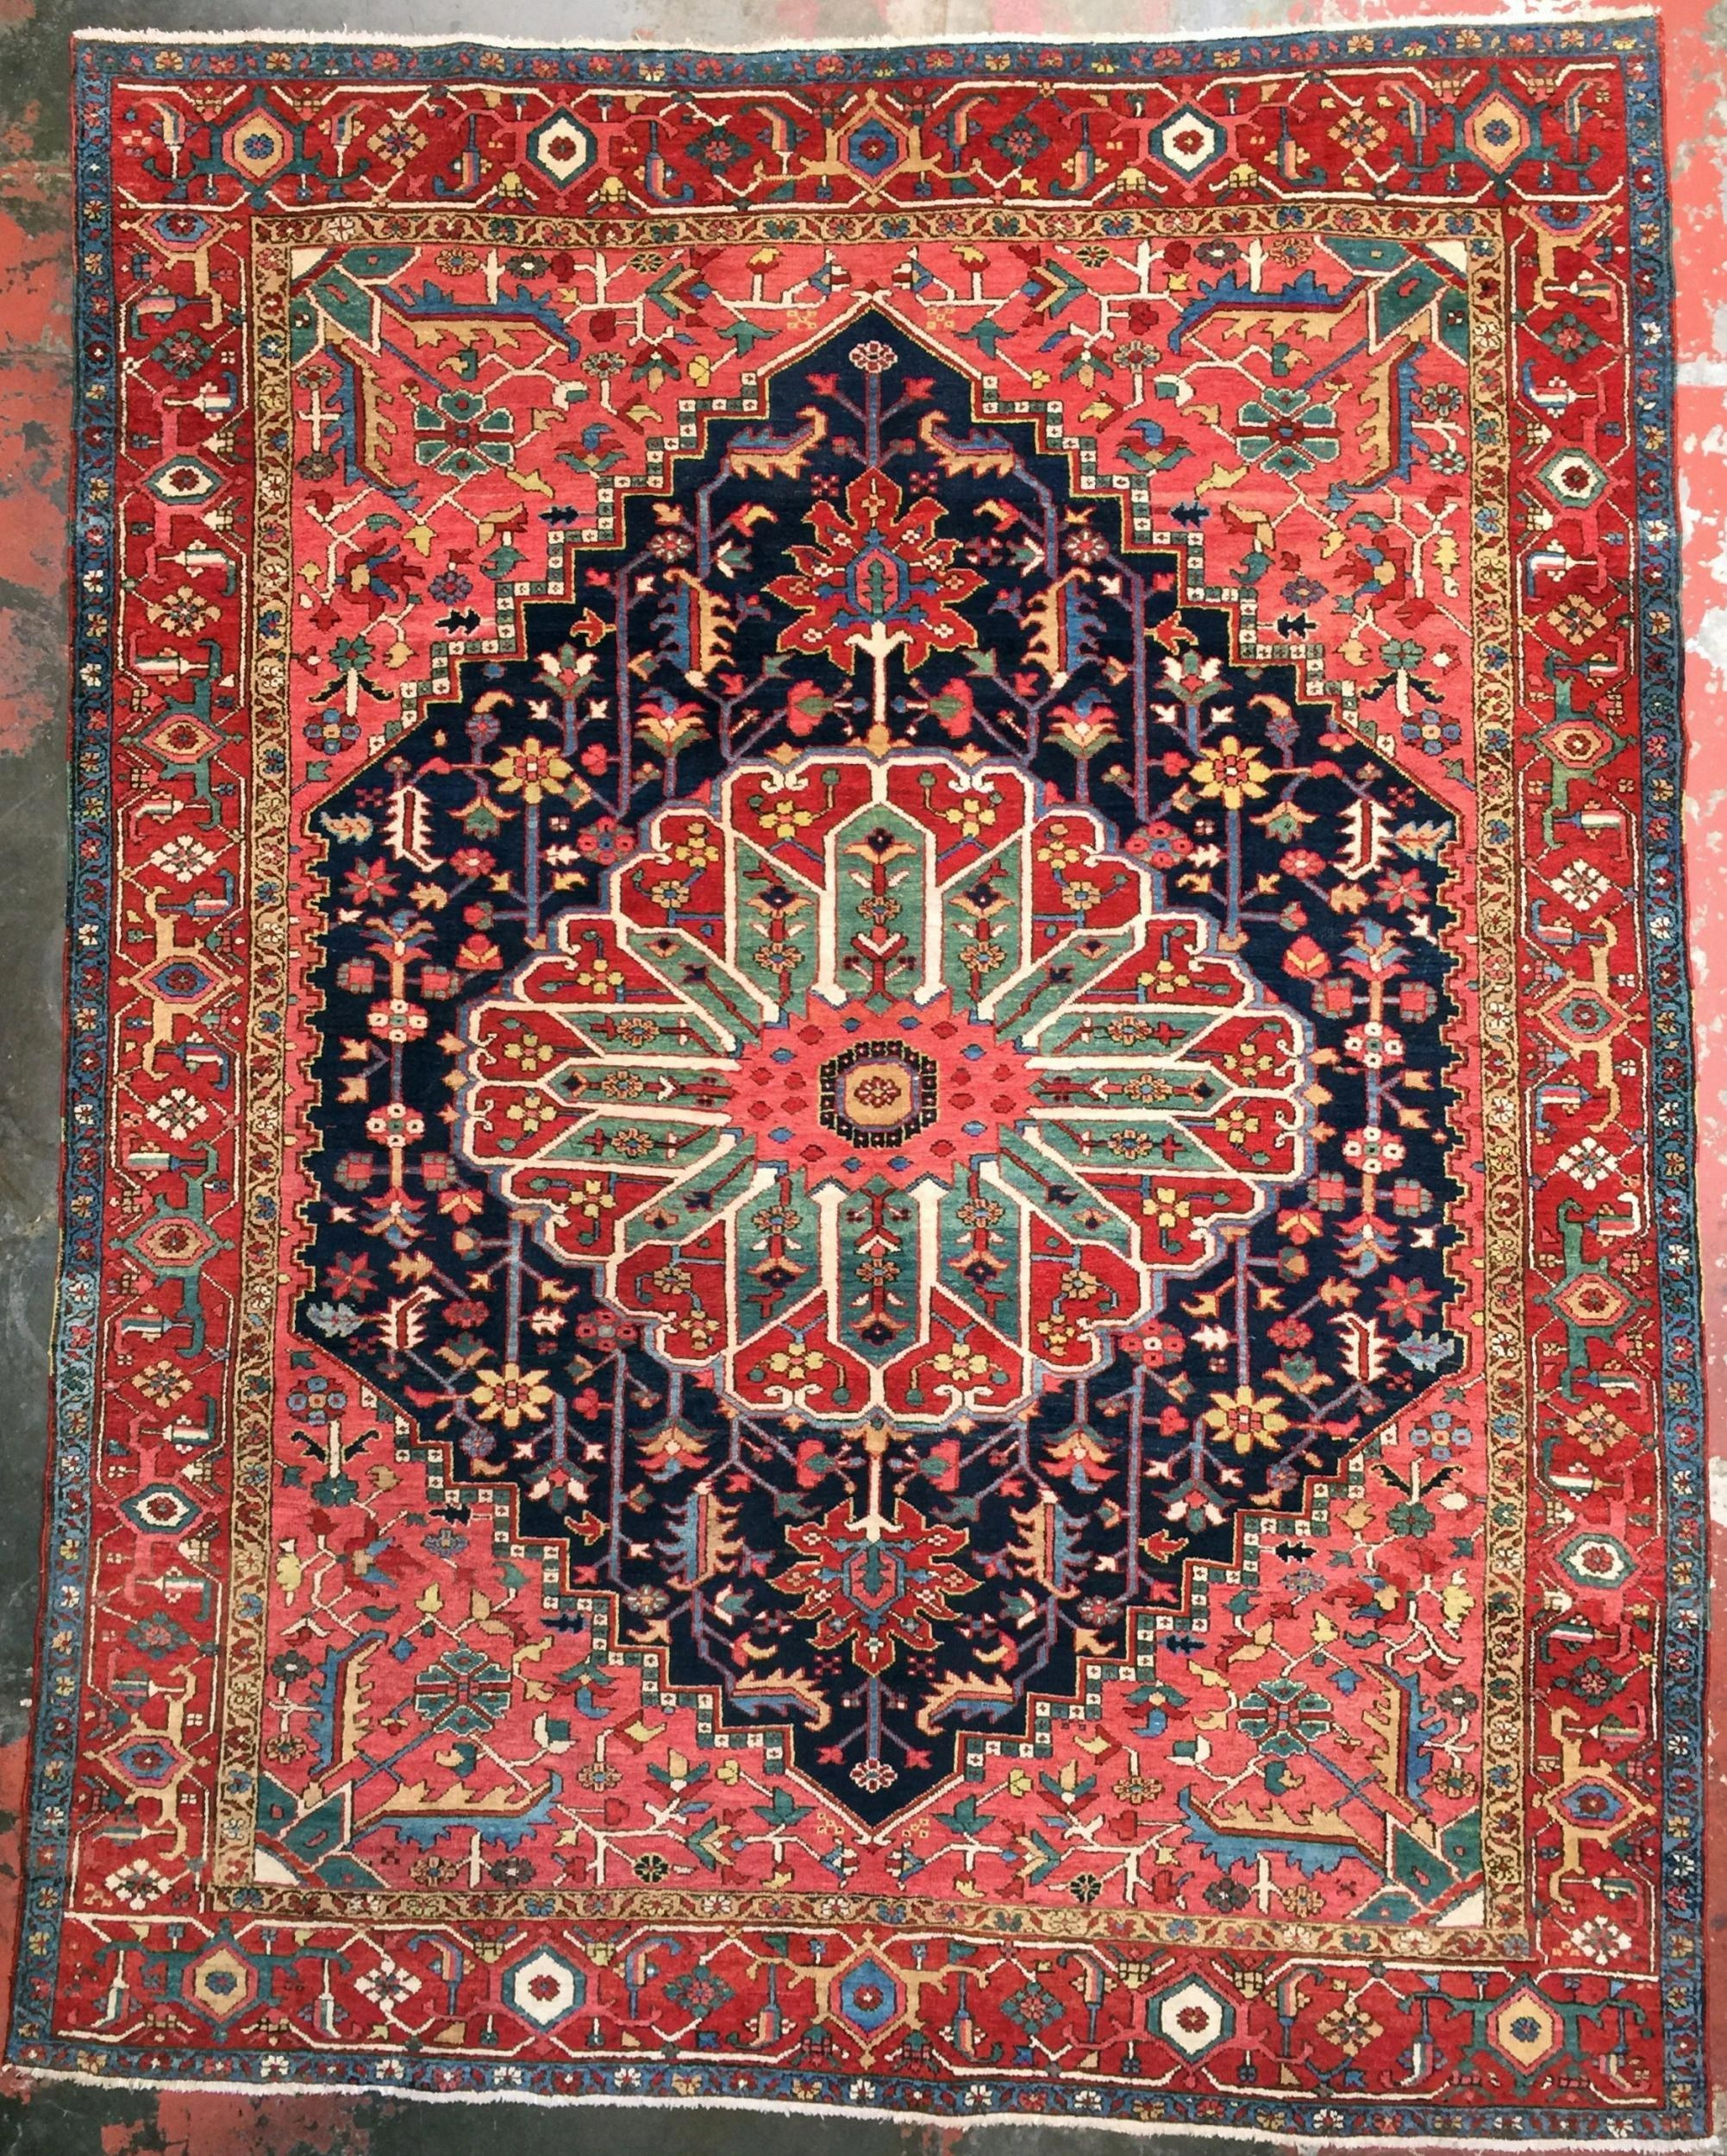 Pin by Marilena on tappeti Serapi rug, Rugs, Rugs on carpet